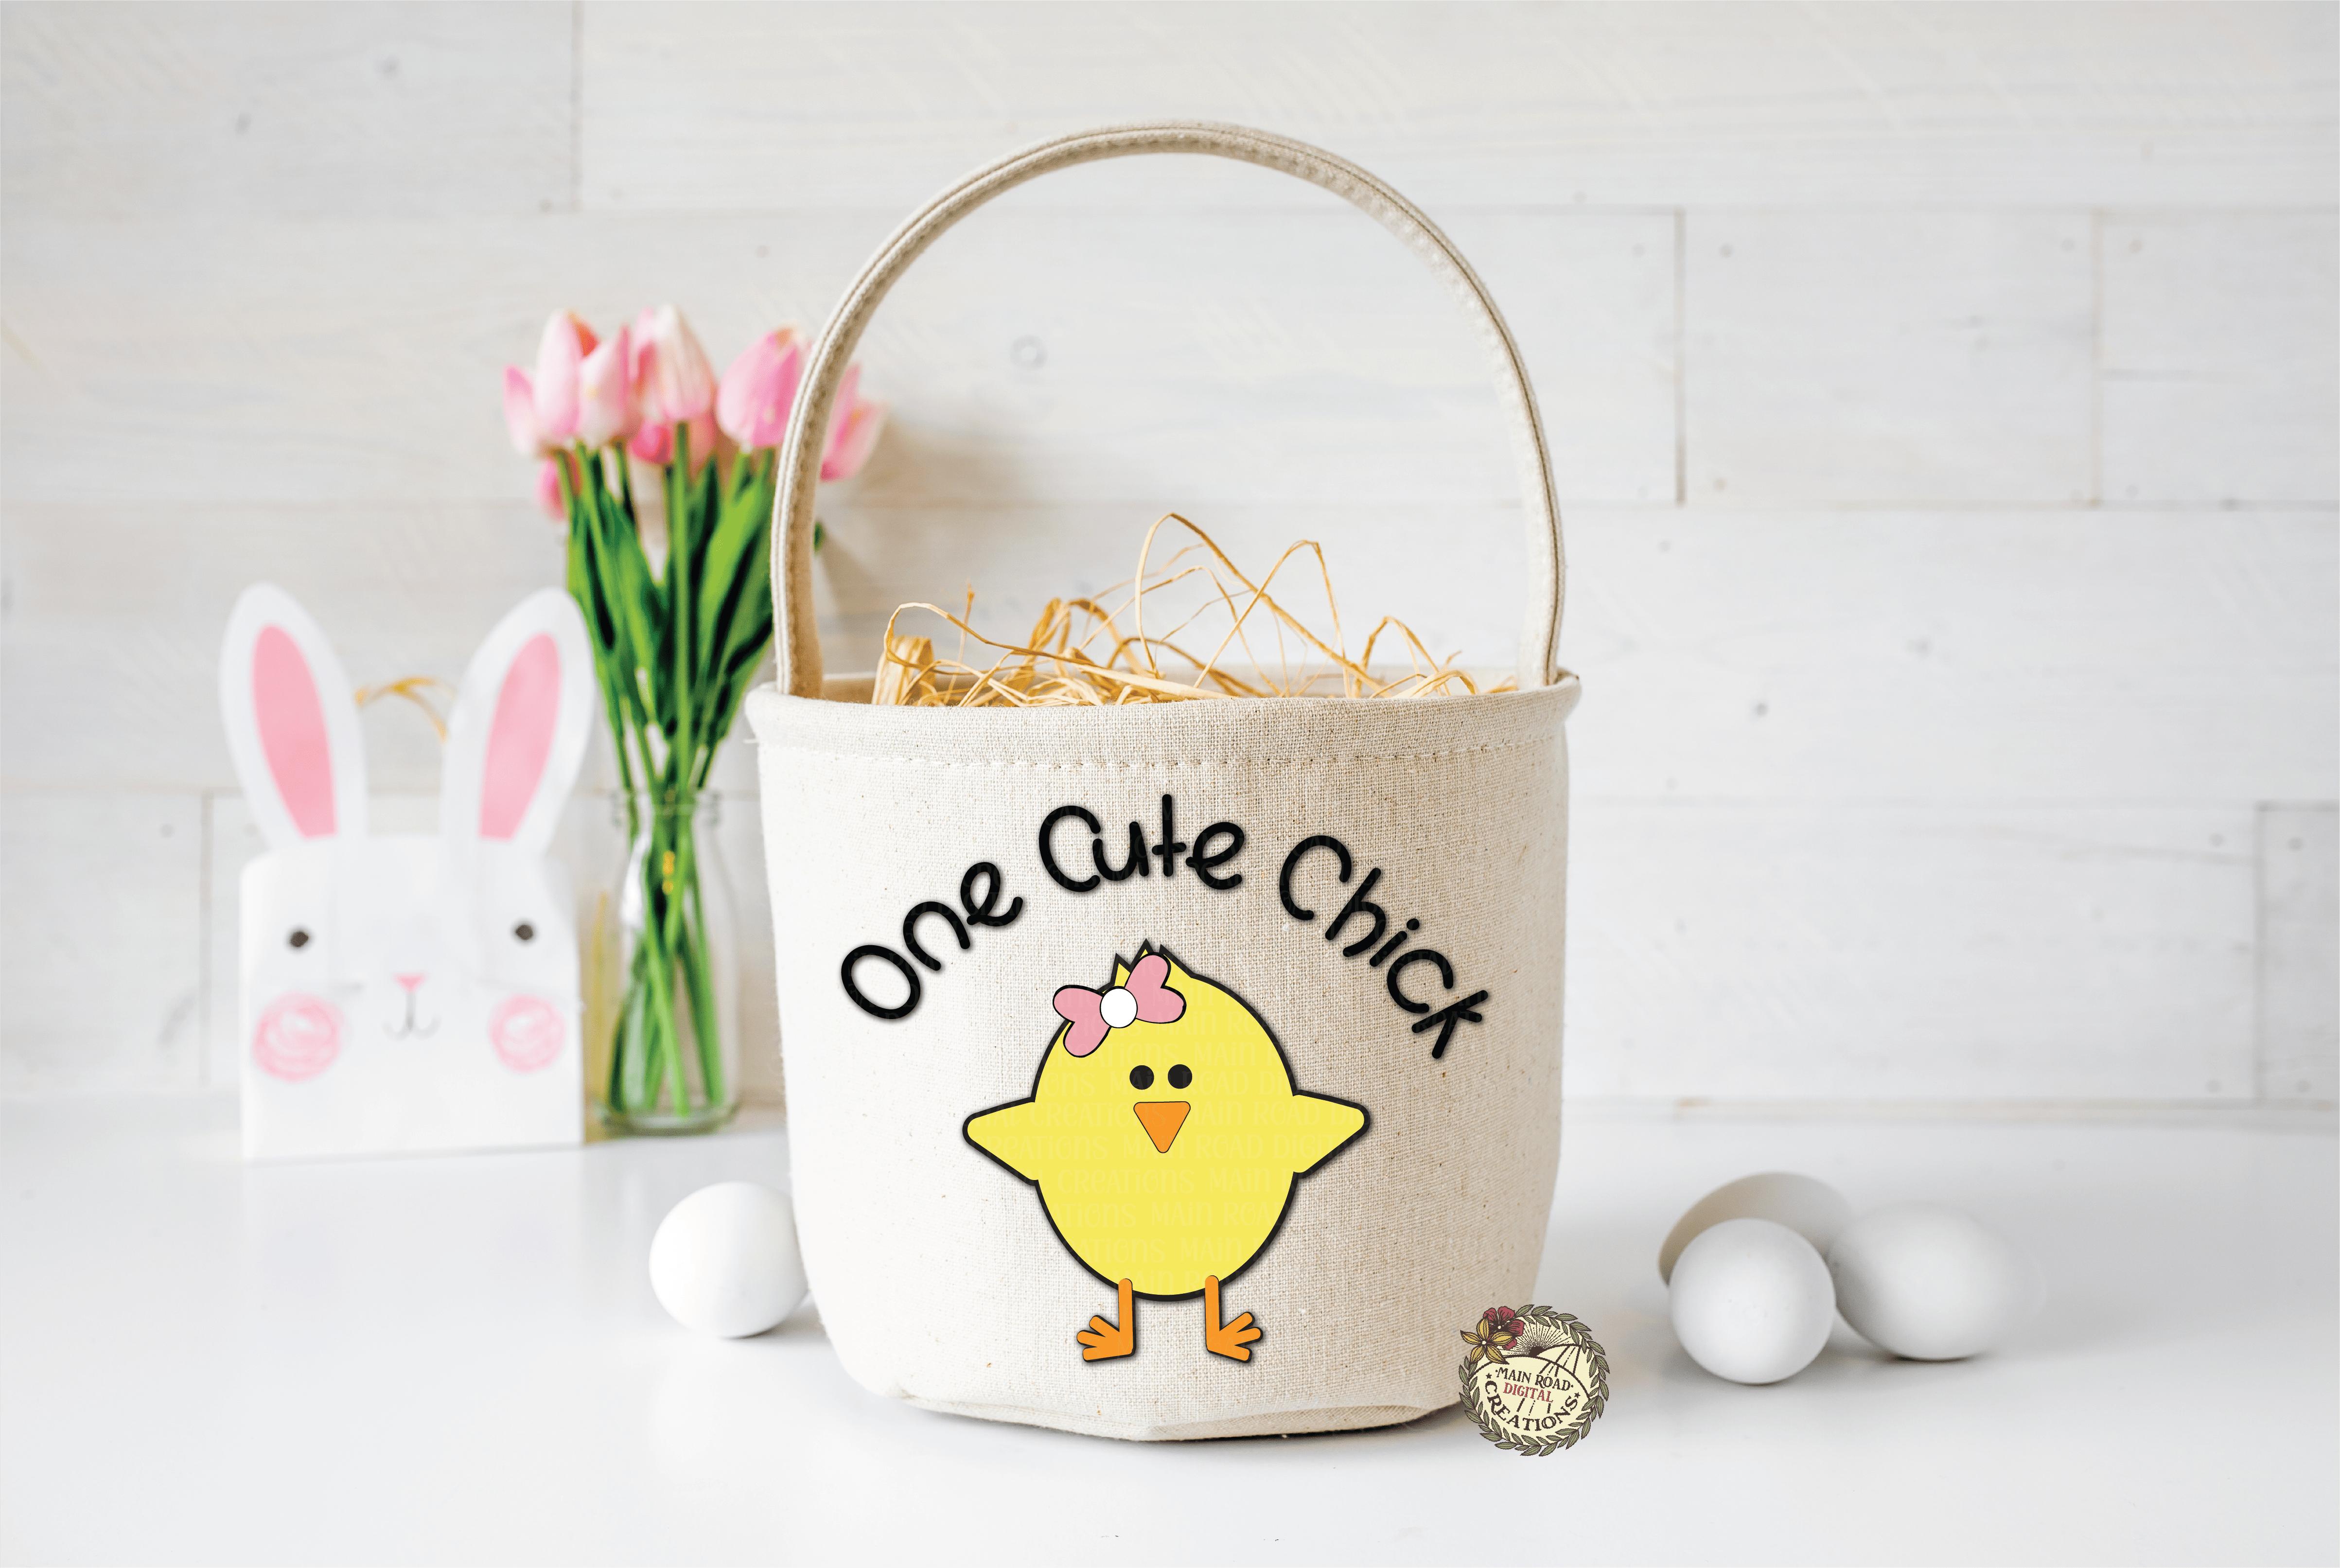 one cute chick basket example with free svg